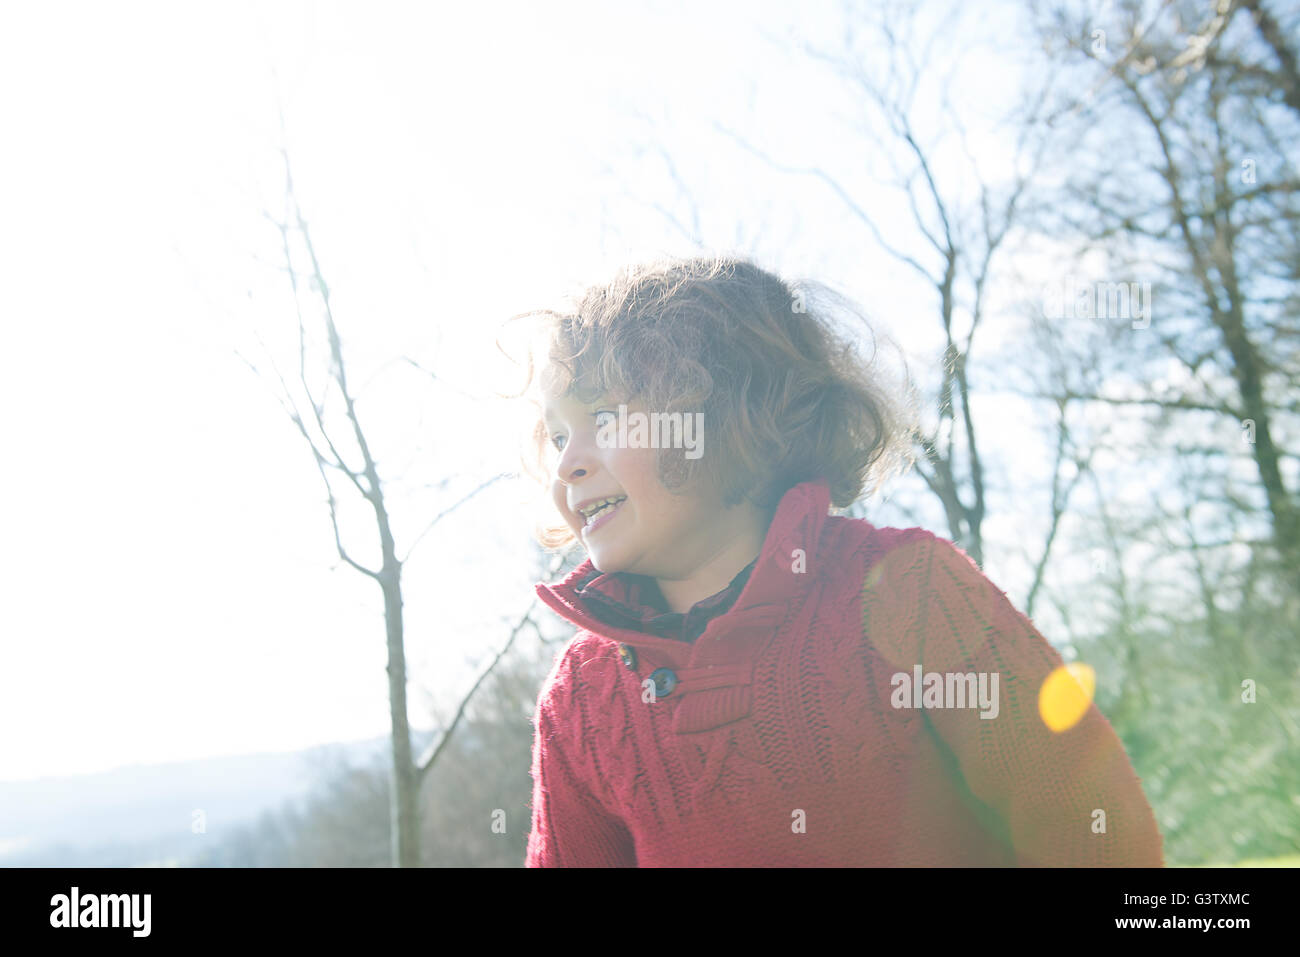 A four year old boy in a red jumper standing in the sunshine in a garden. - Stock Image